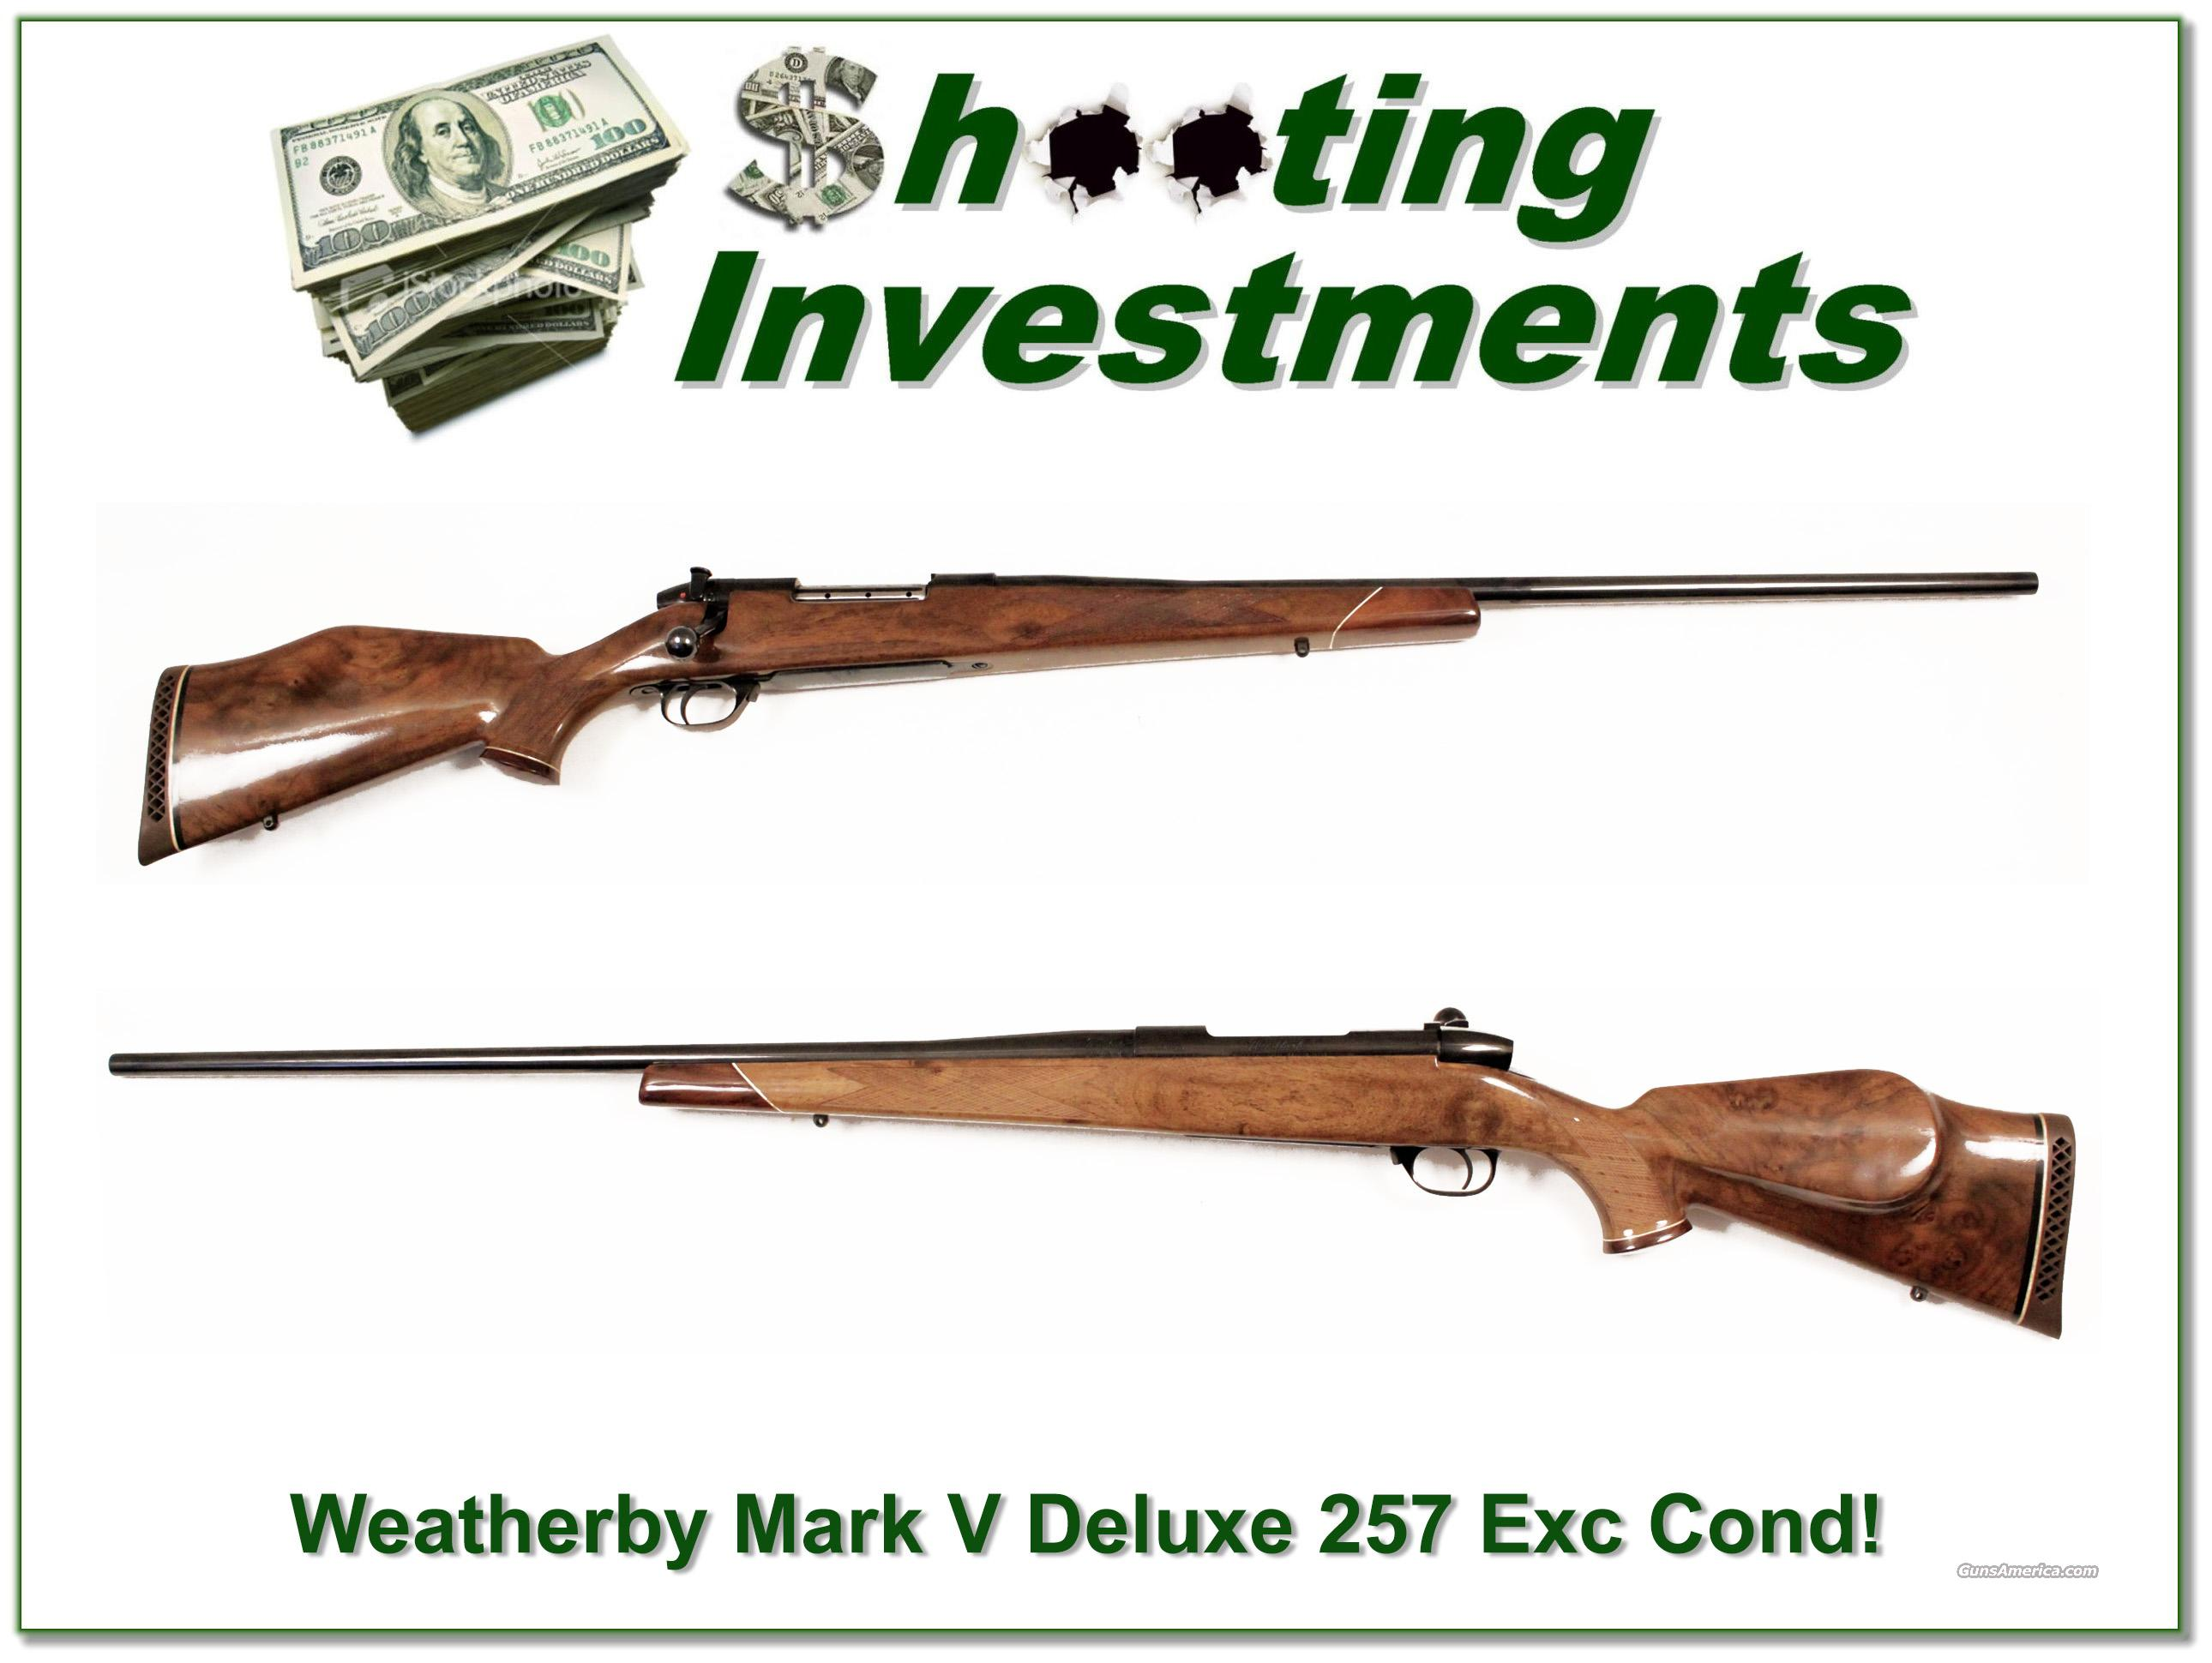 Weatherby Mark V Deluxe 257 Magnum 26in near new!  Guns > Rifles > Weatherby Rifles > Sporting